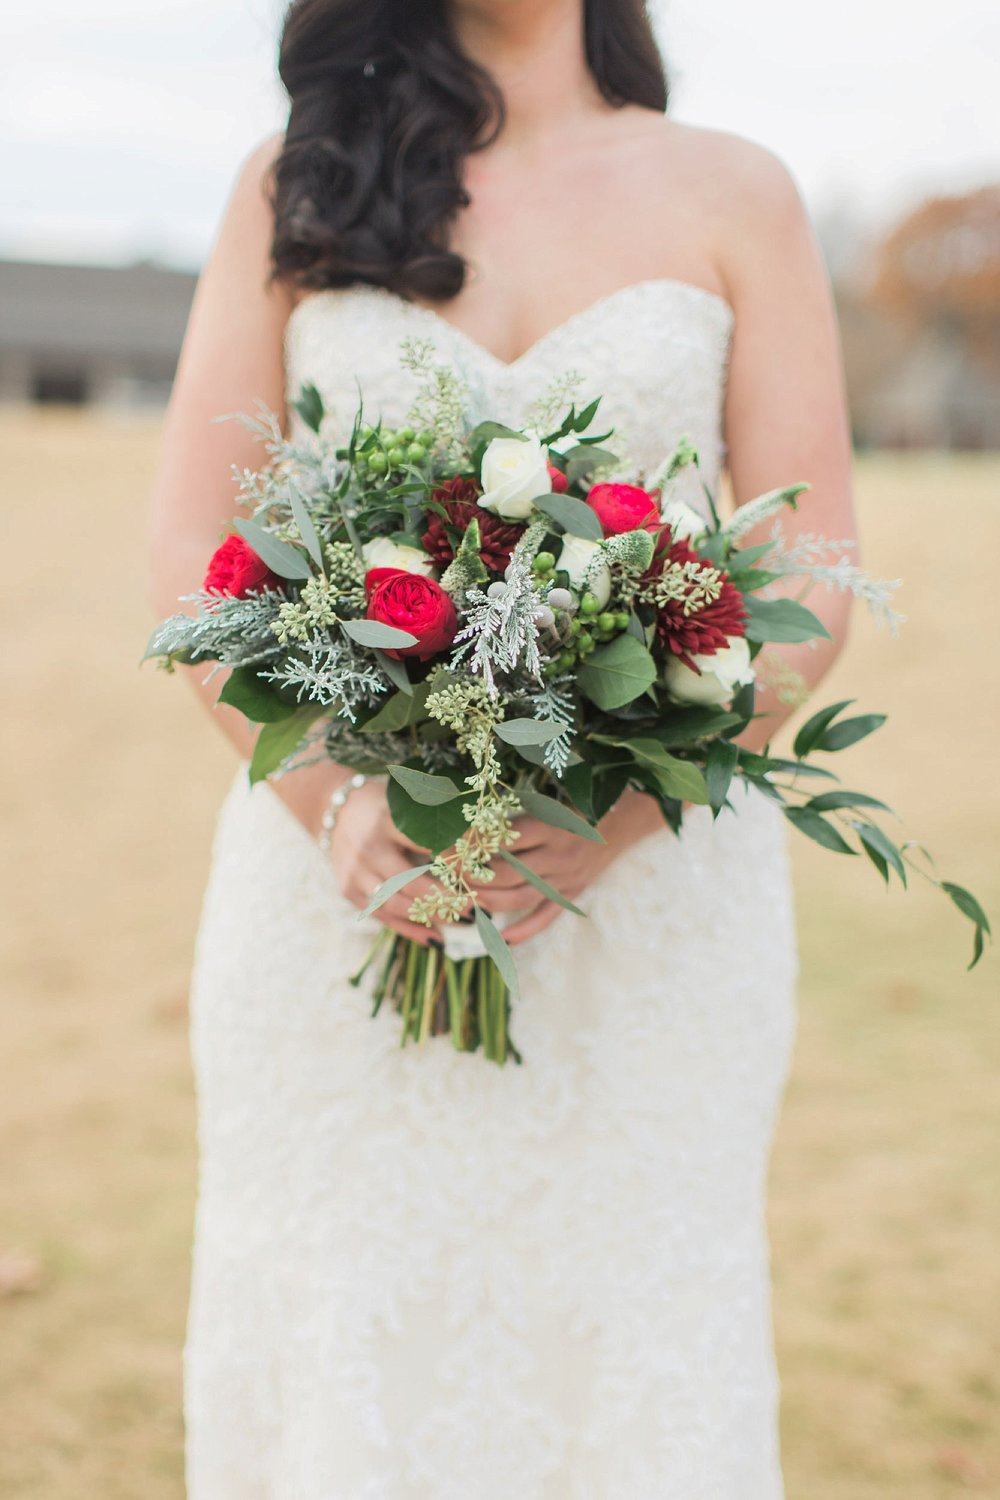 Red, white, and green wedding bouquet